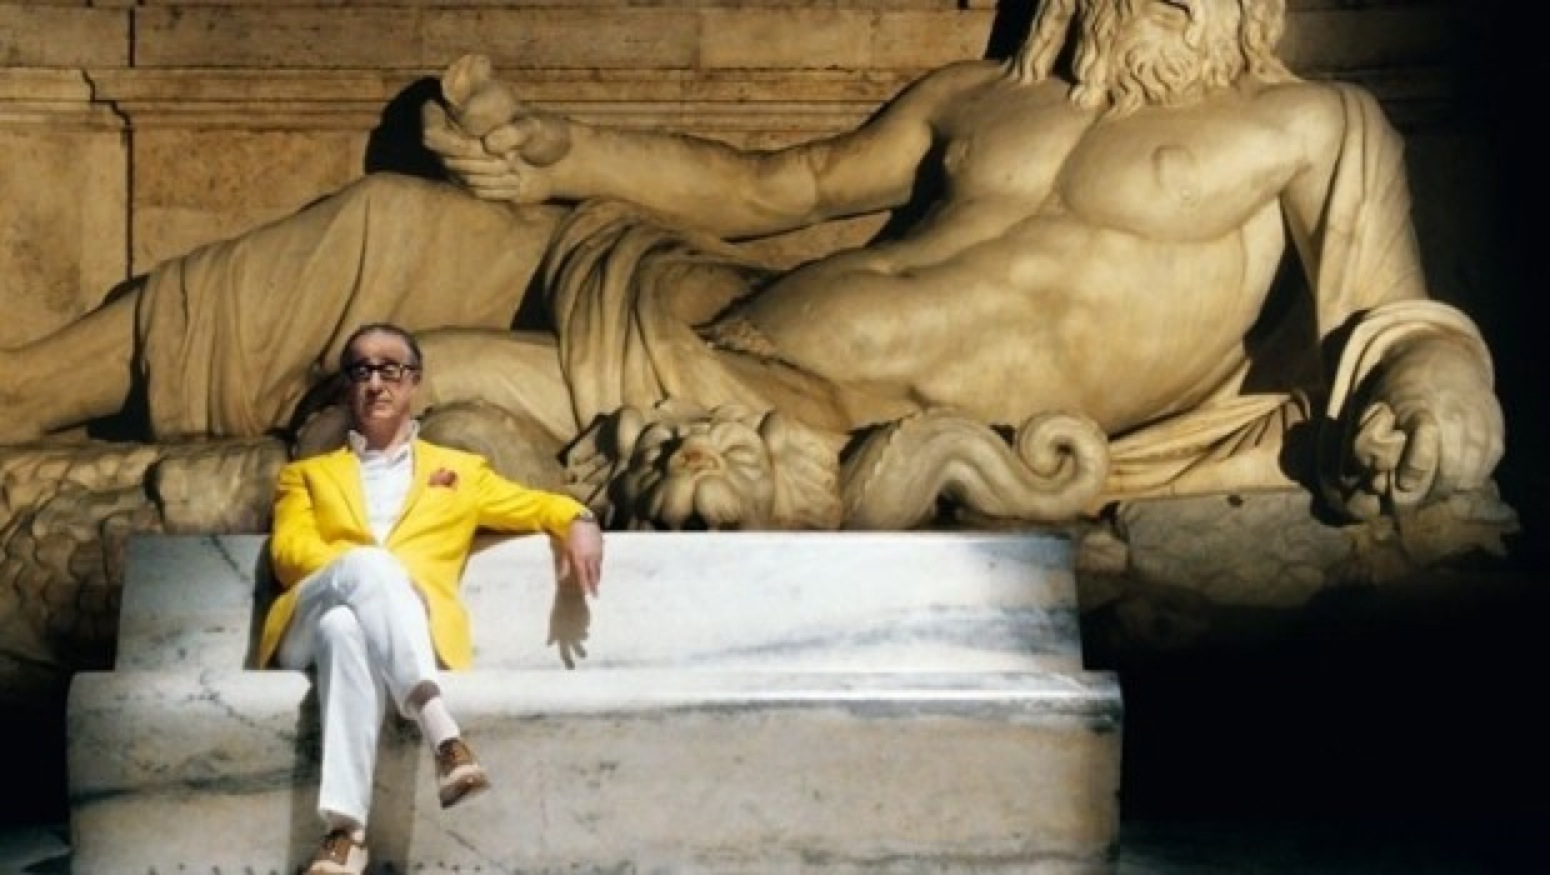 The Great Beauty: The Sights of Rome in the Oscar-Winning Film by Paolo Sorrentino